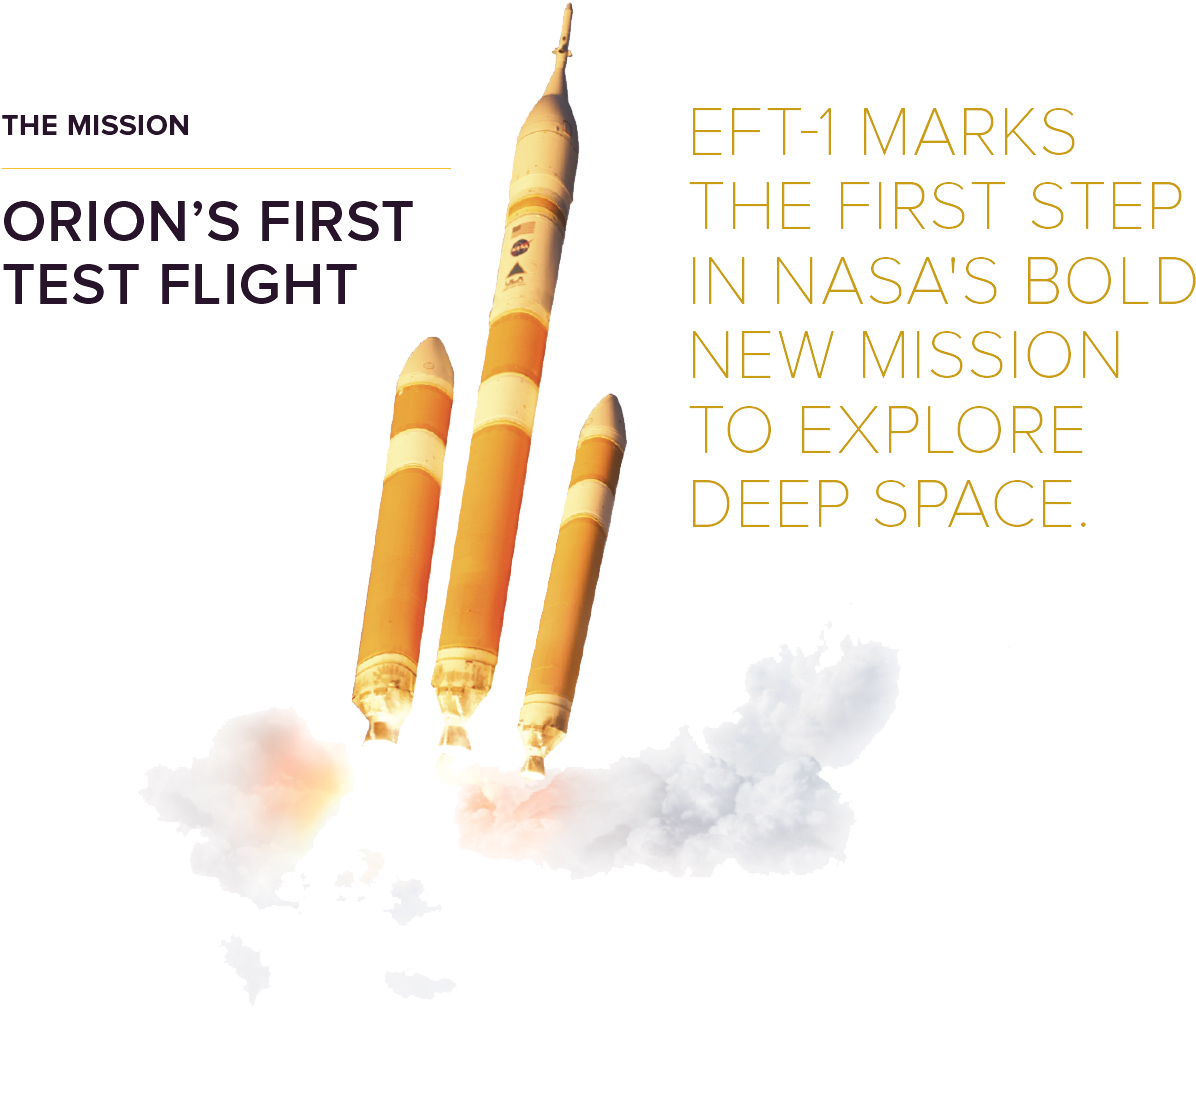 orions-first-flight